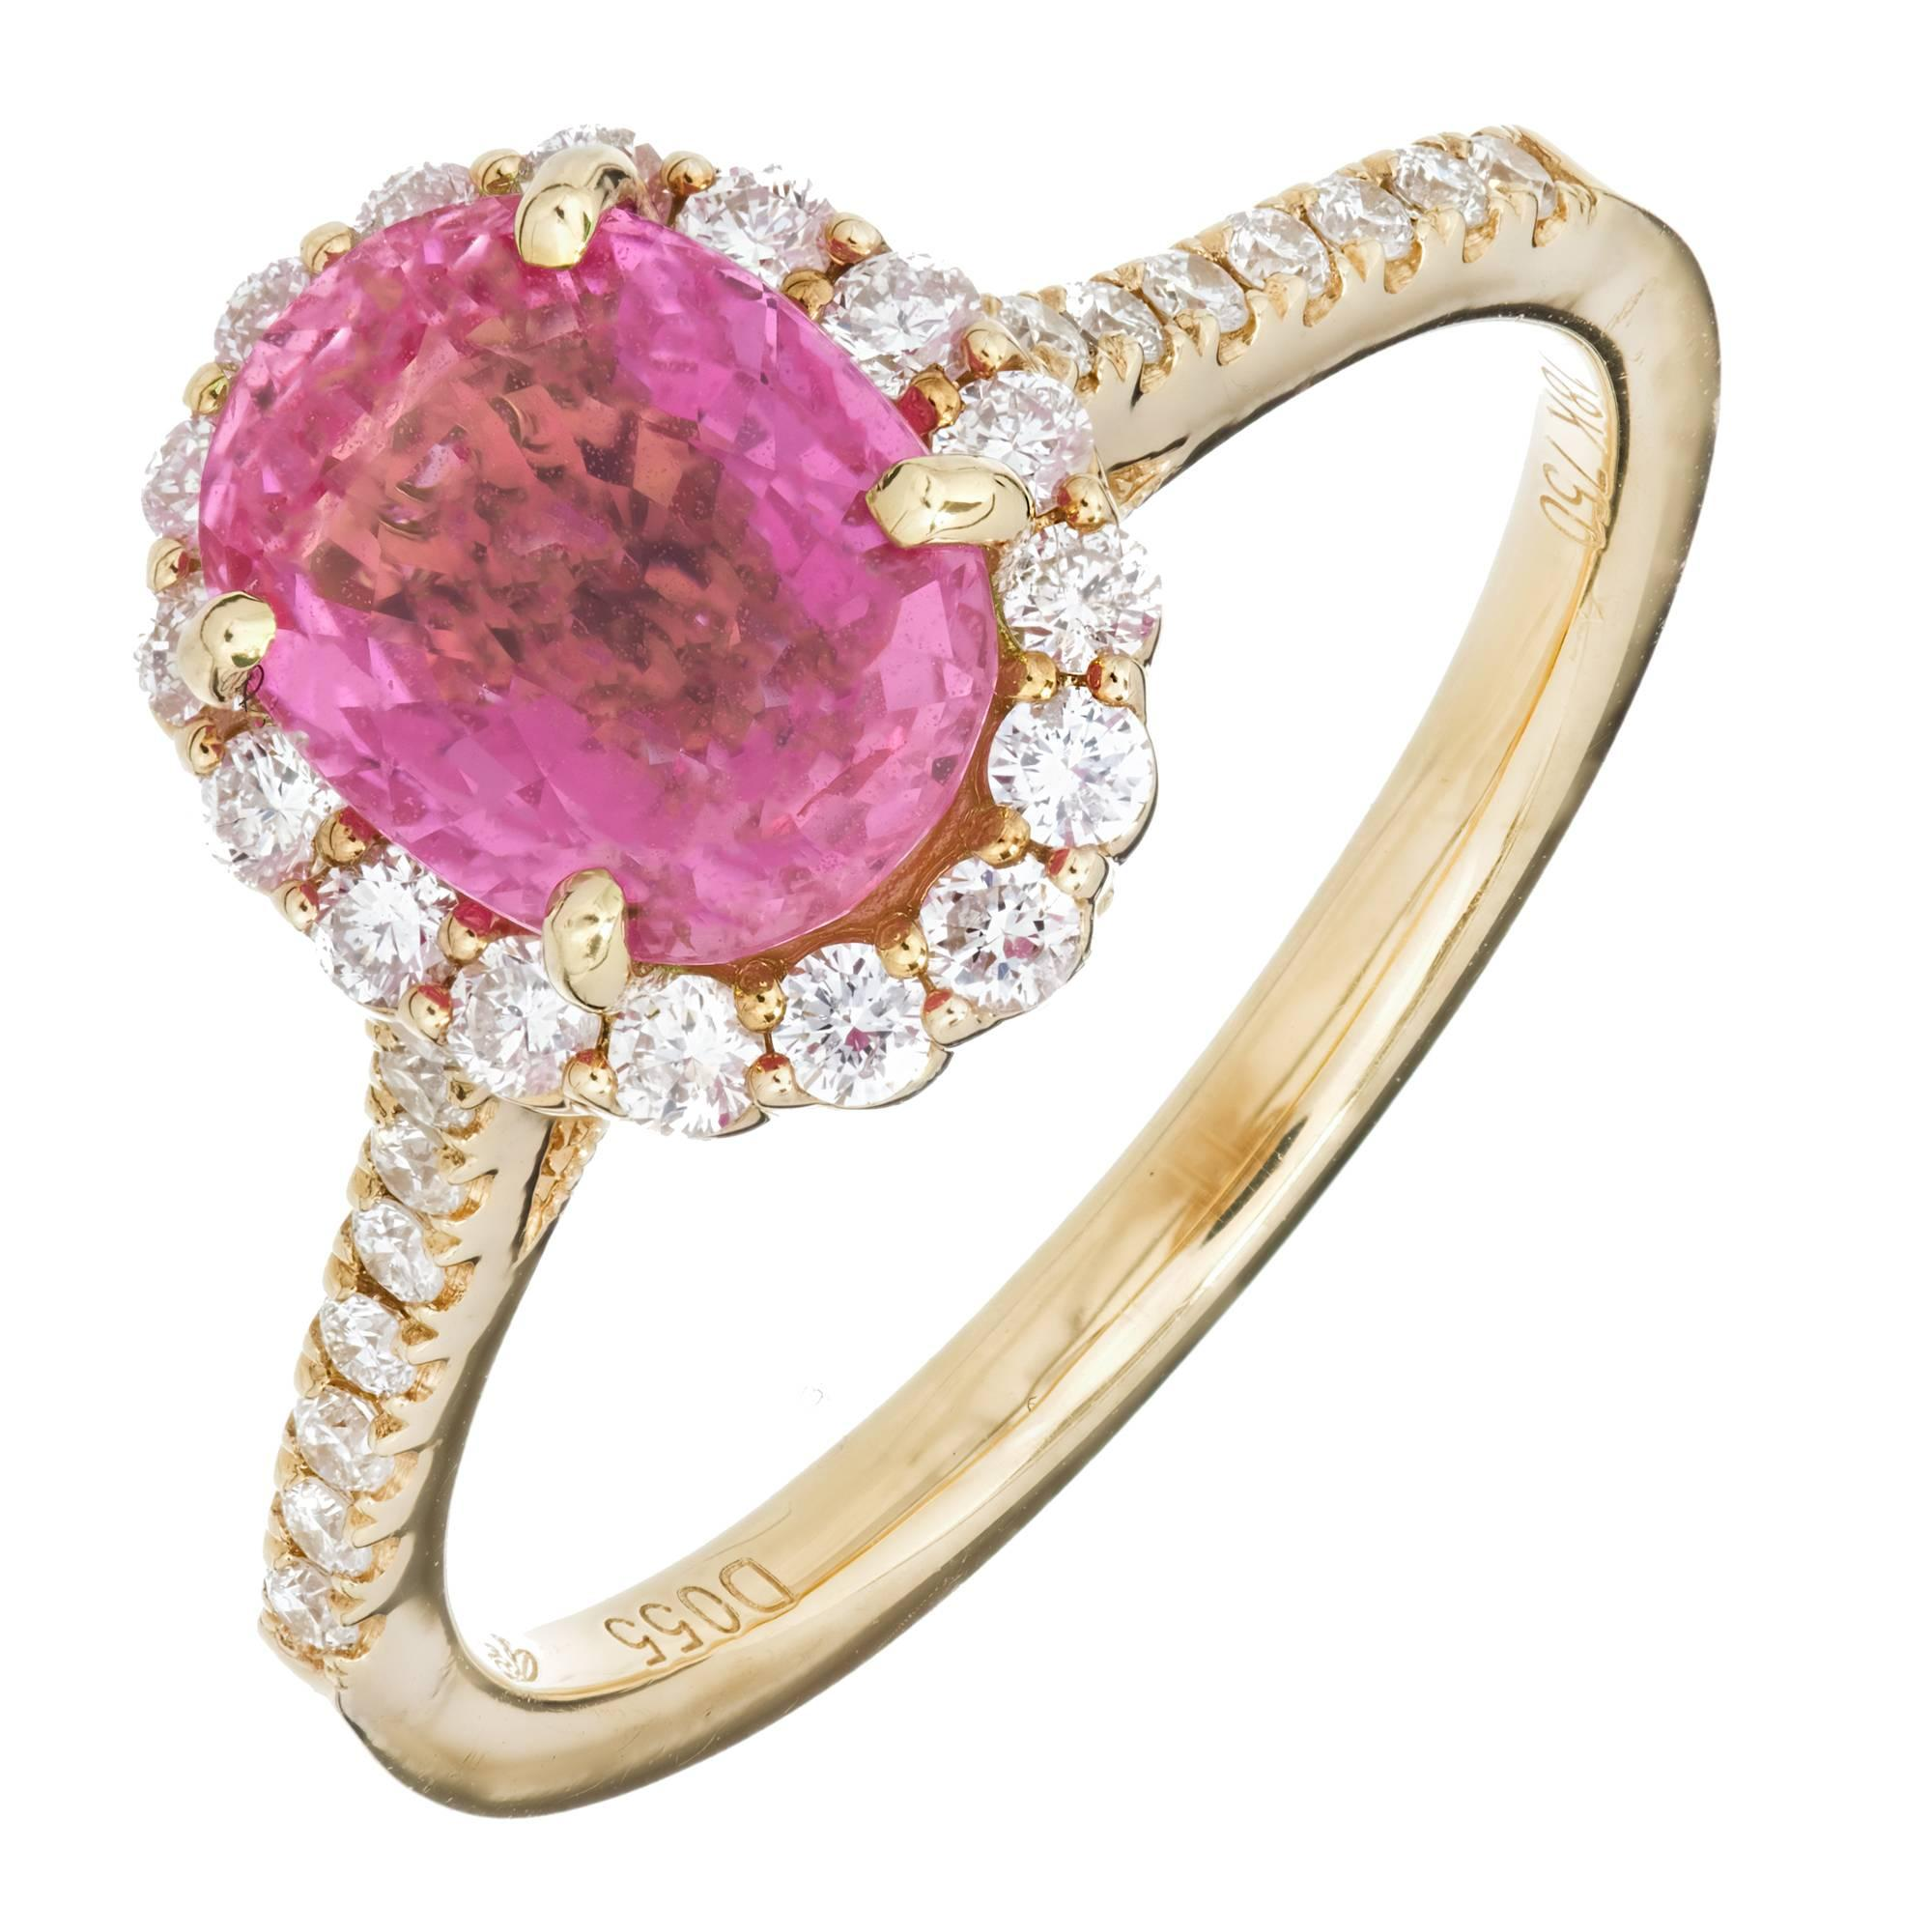 GIA Certified 2.41 Carat Pink Sapphire White Diamond Halo Gold Engagement Ring